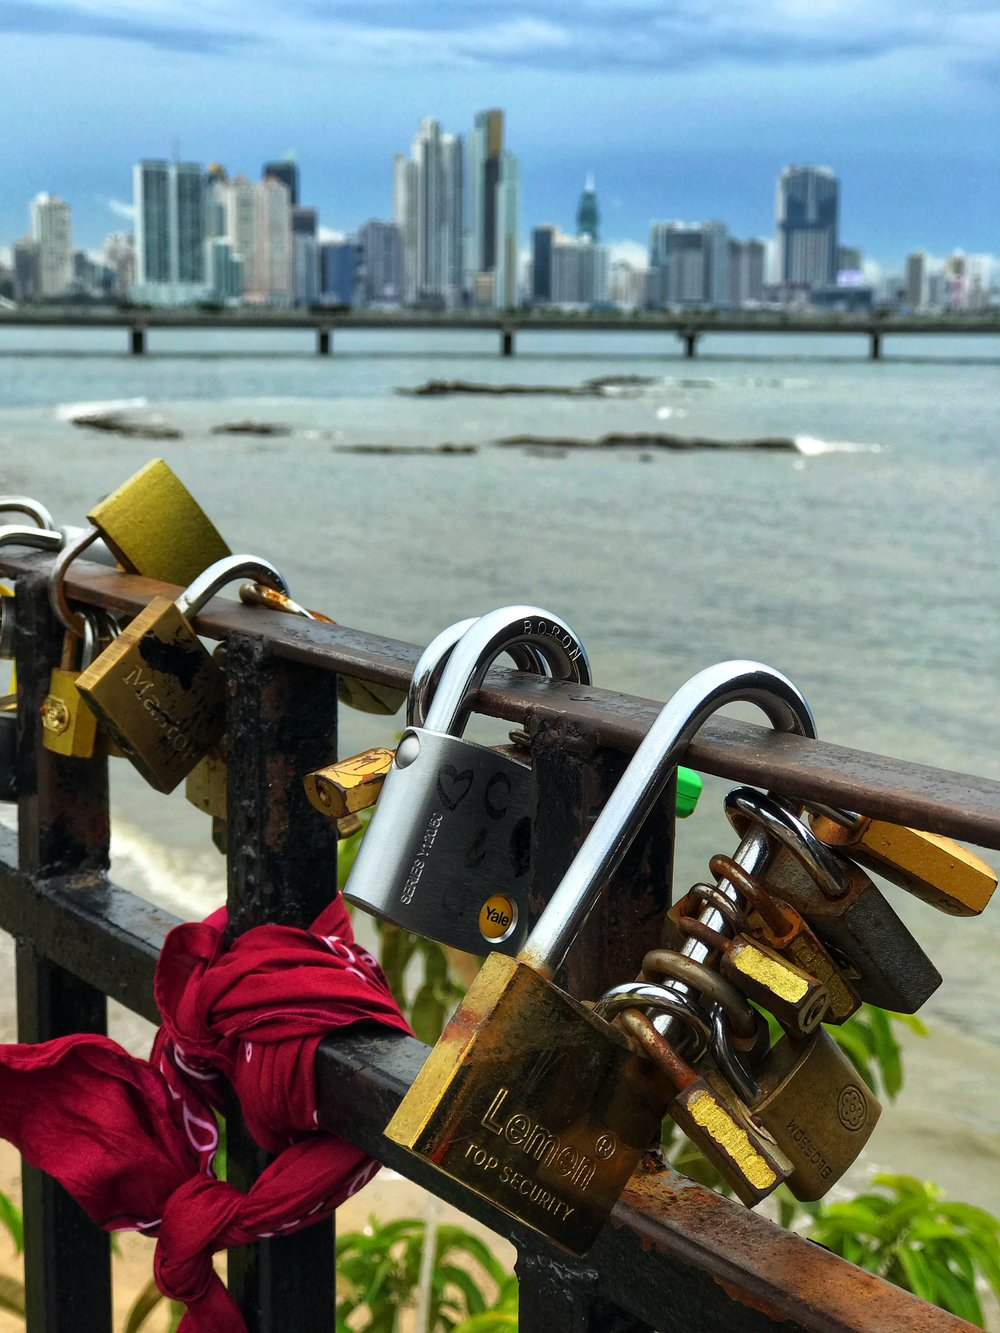 Locks of love with a view downtown